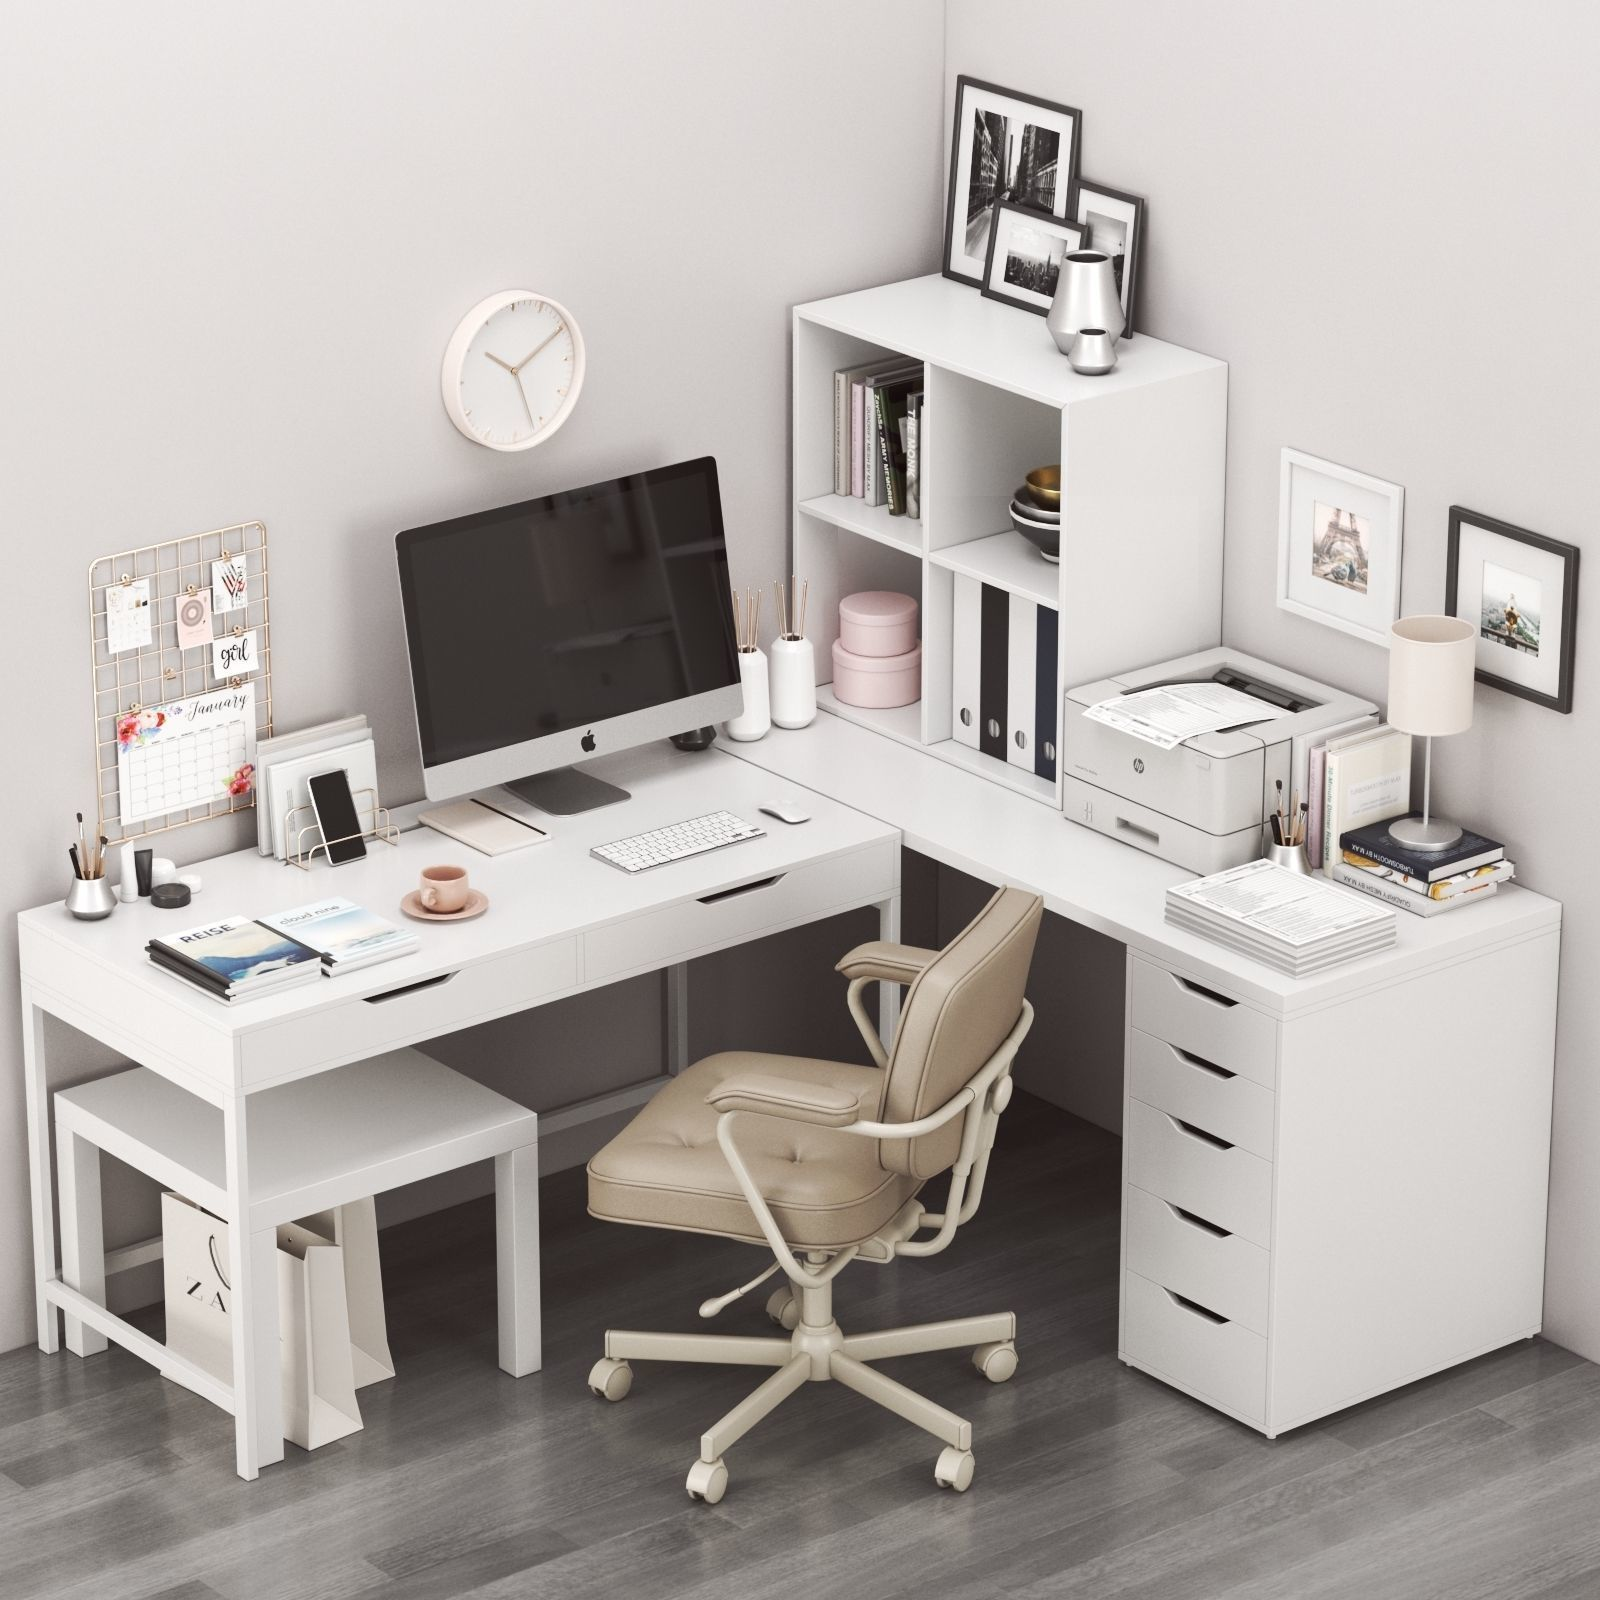 Corner workplace with ALEX table and ALEFJALL chair